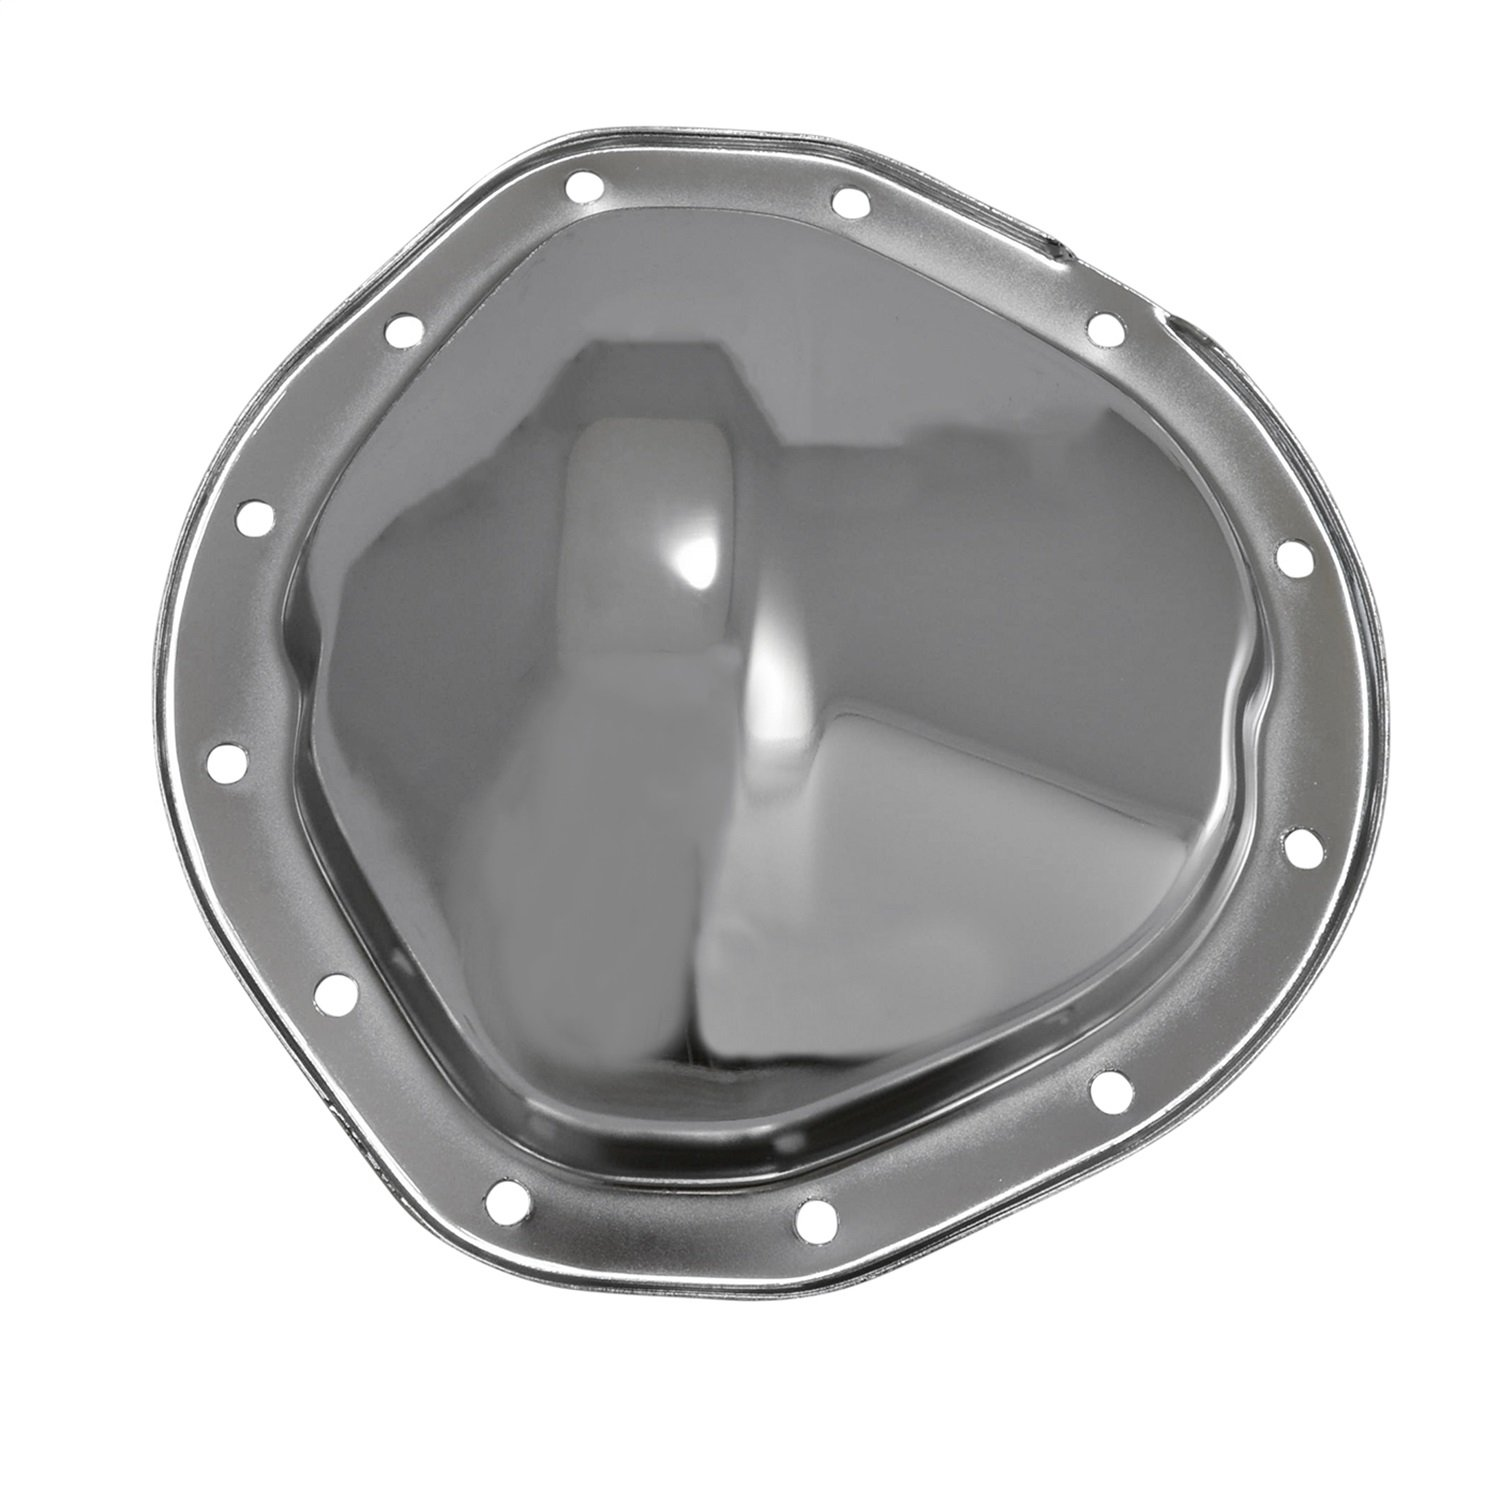 Yukon (YP C1-GM12T) Chrome Cover for GM 12-Bolt Truck Differential Yukon Gear